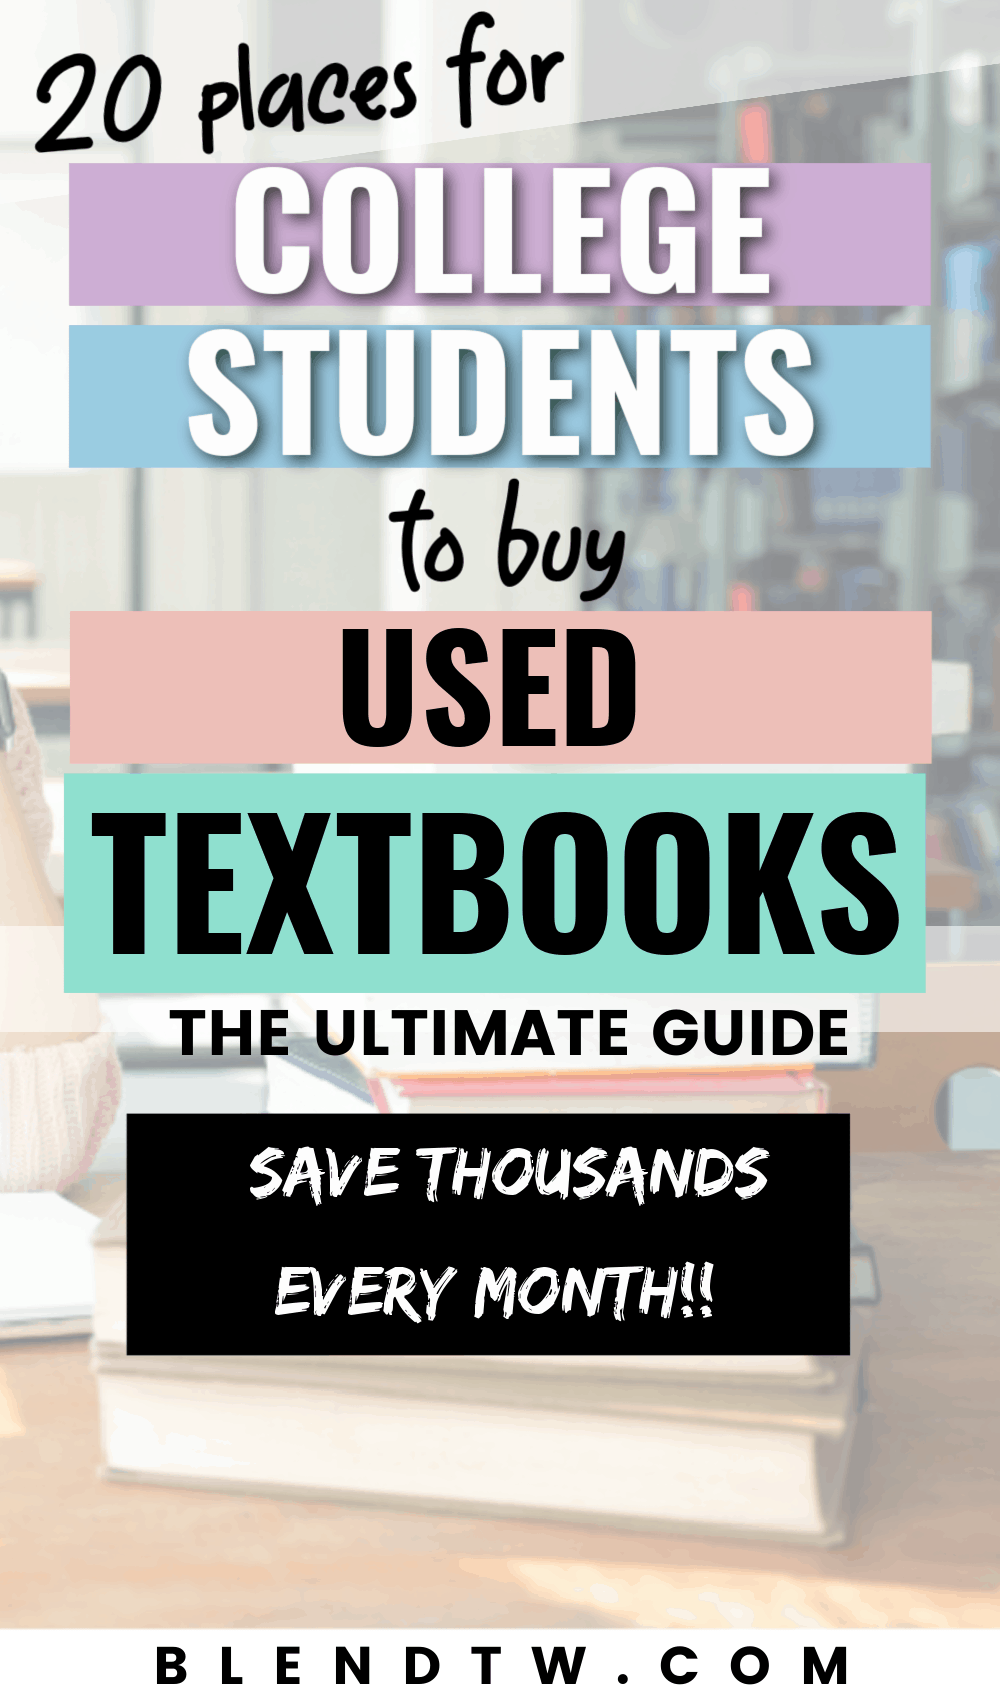 20 places for college students to buy used textbooks